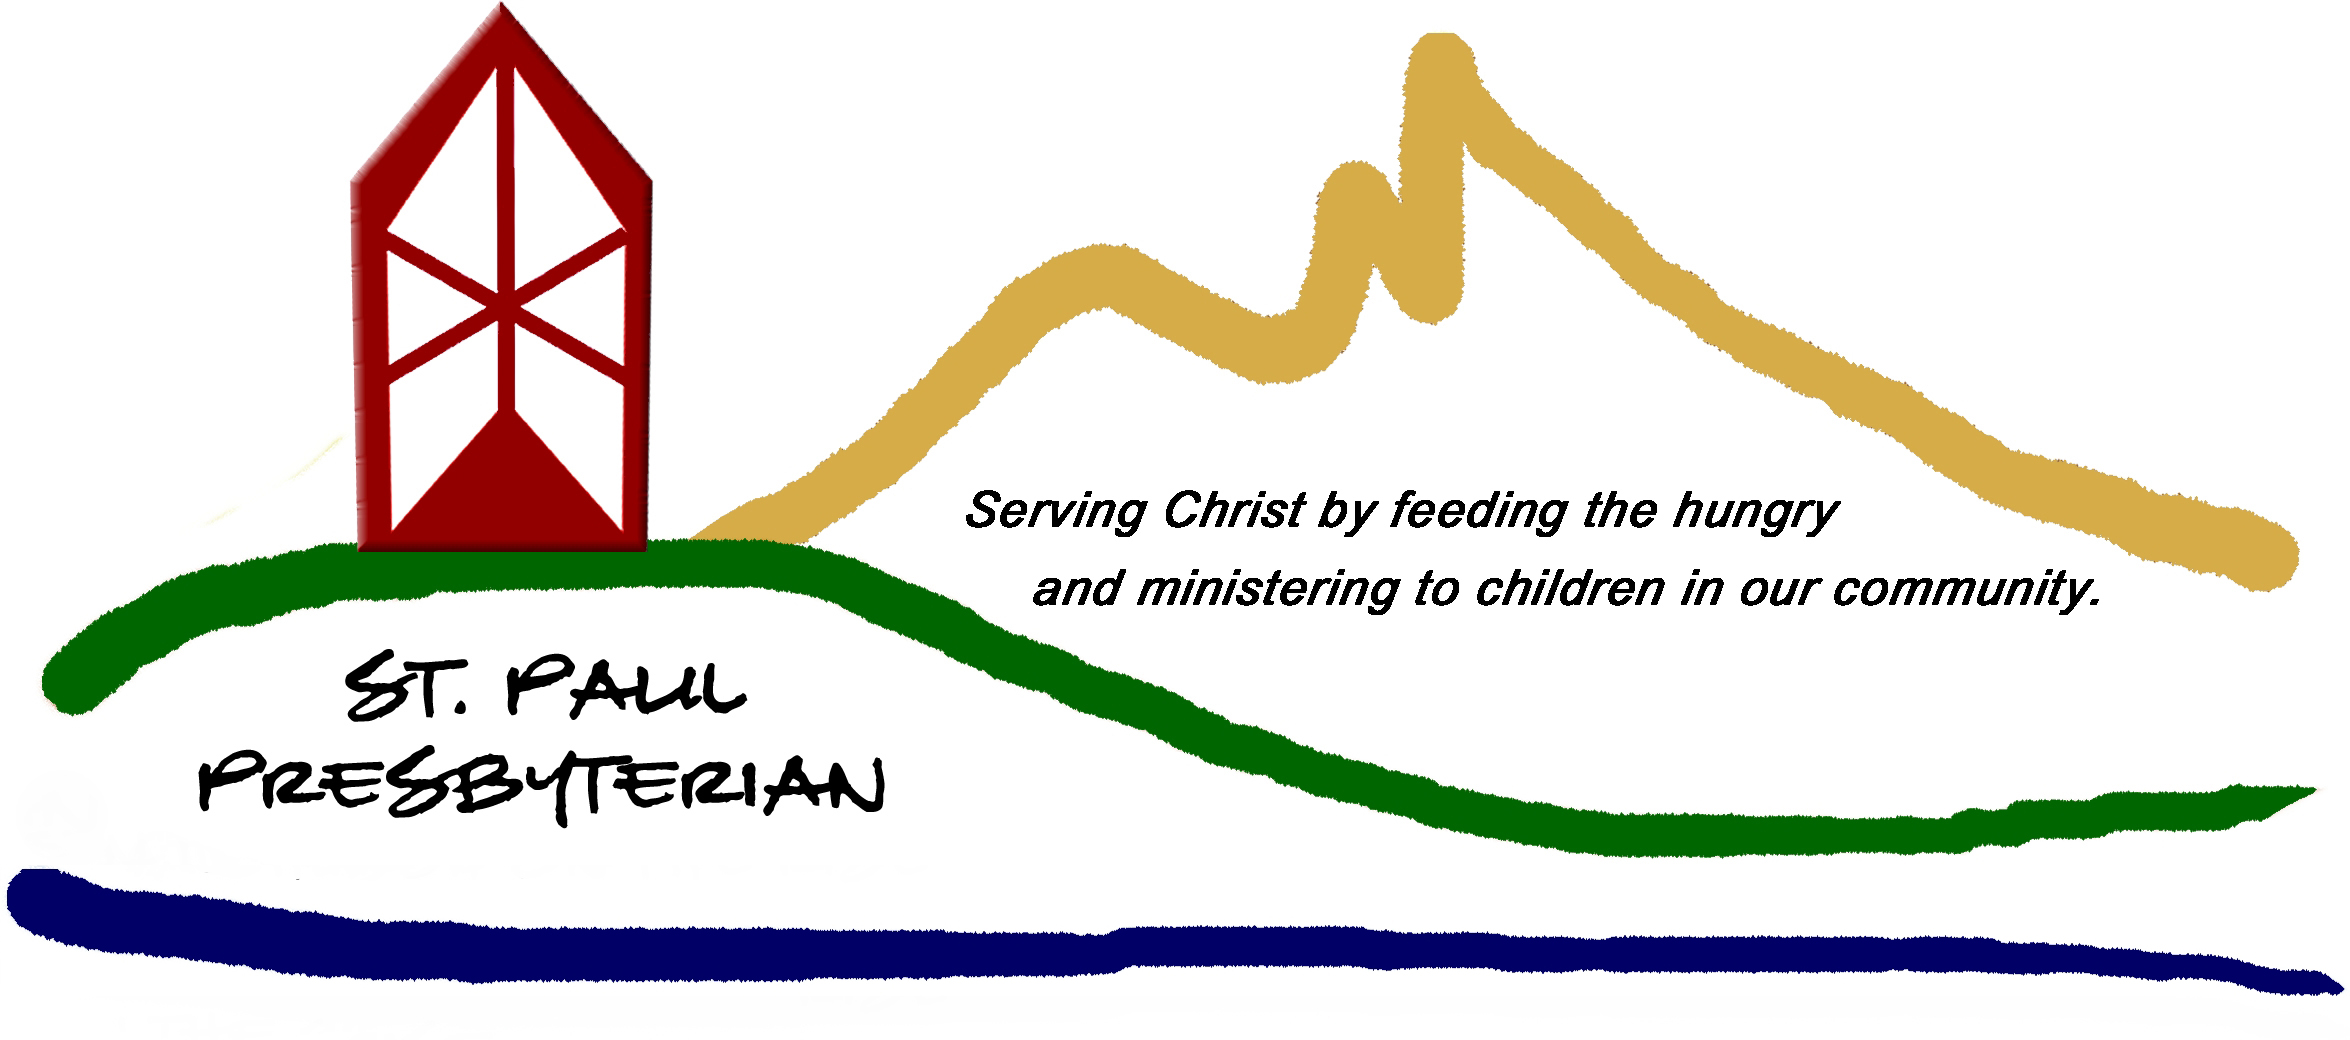 Feeding Christ by feeding the hungry and ministering to children in our community.